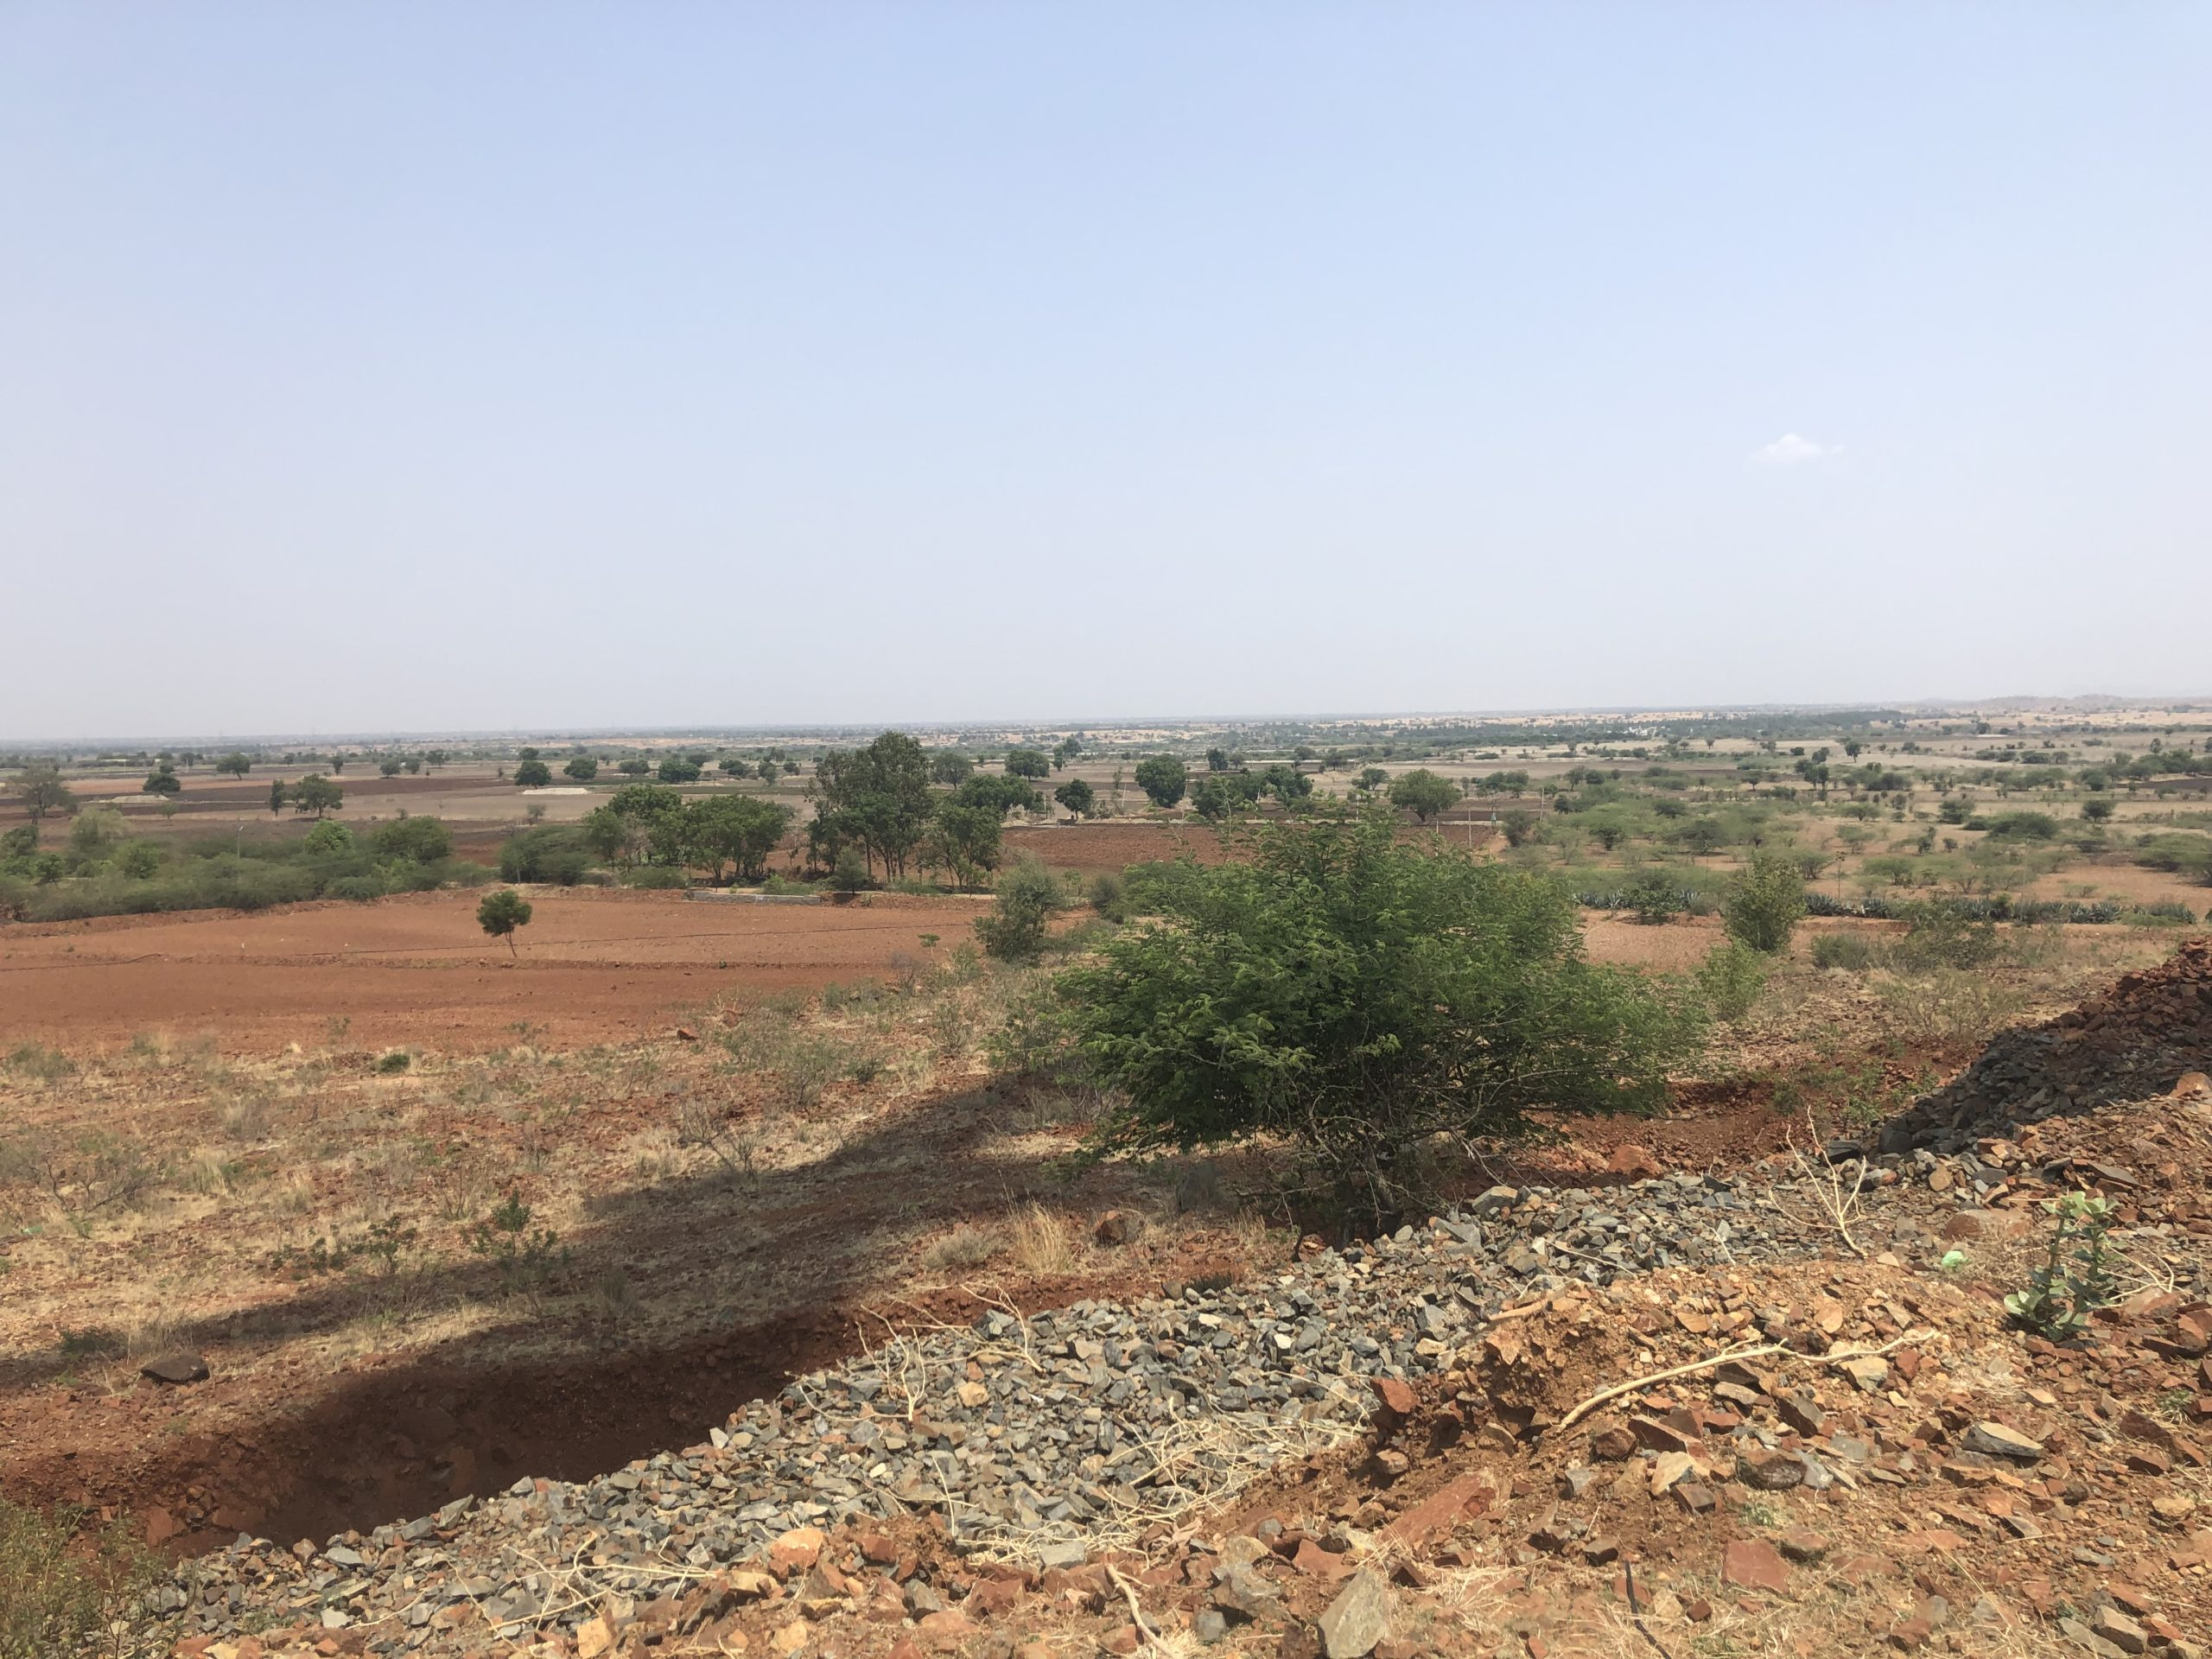 CFM AND AMPYR ENERGY PARTNER TO DEVELOP 138 MW WIND PROJECTS IN INDIA